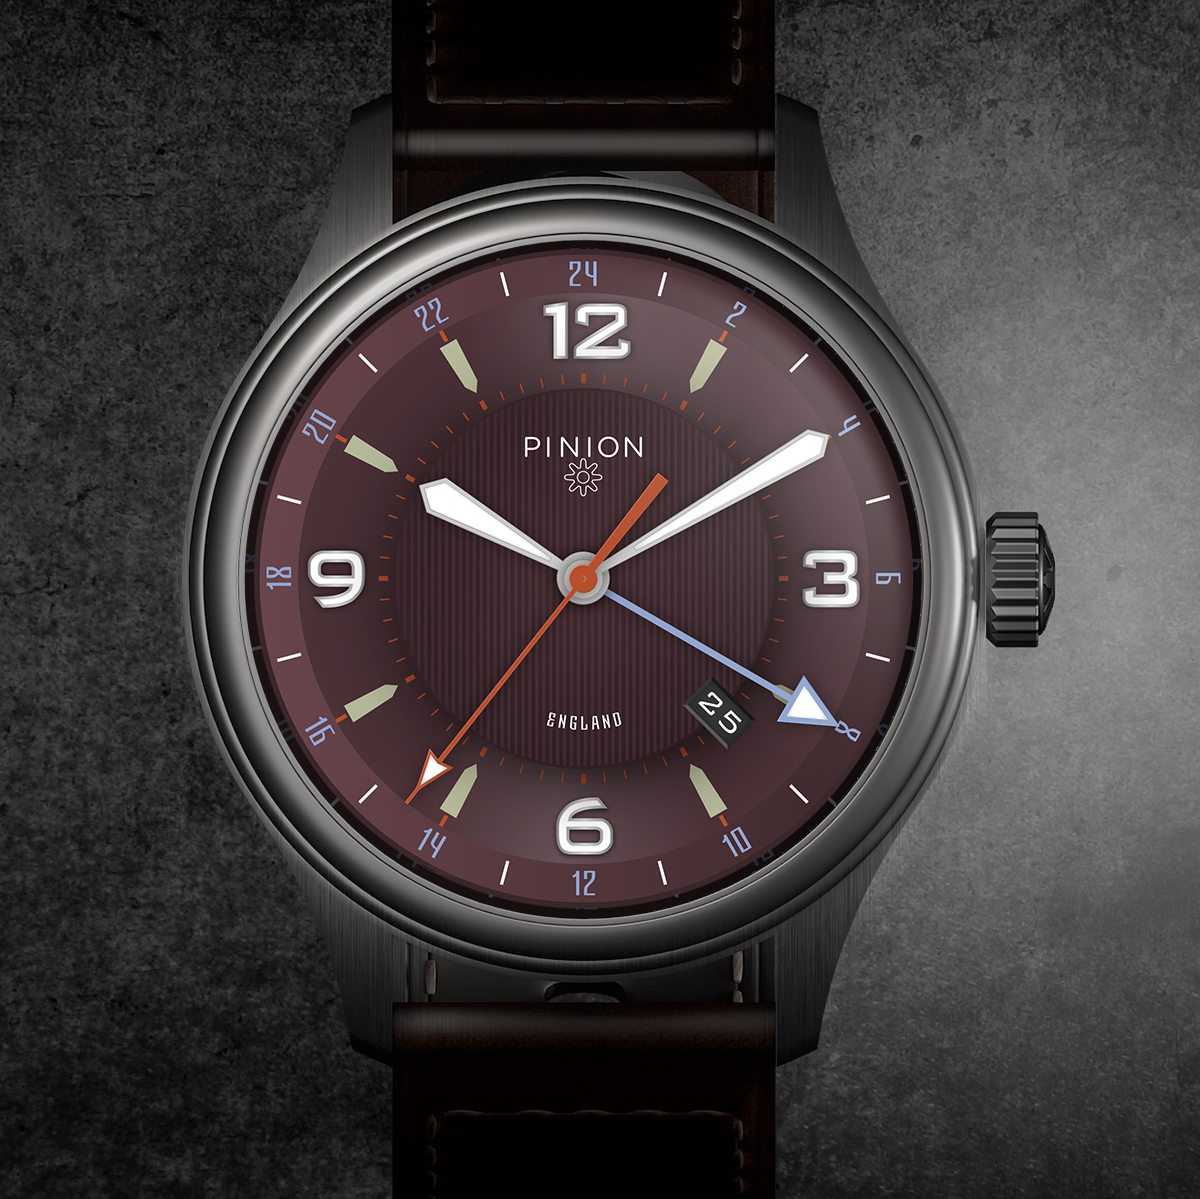 watches hero atom image the pinion introducing watch